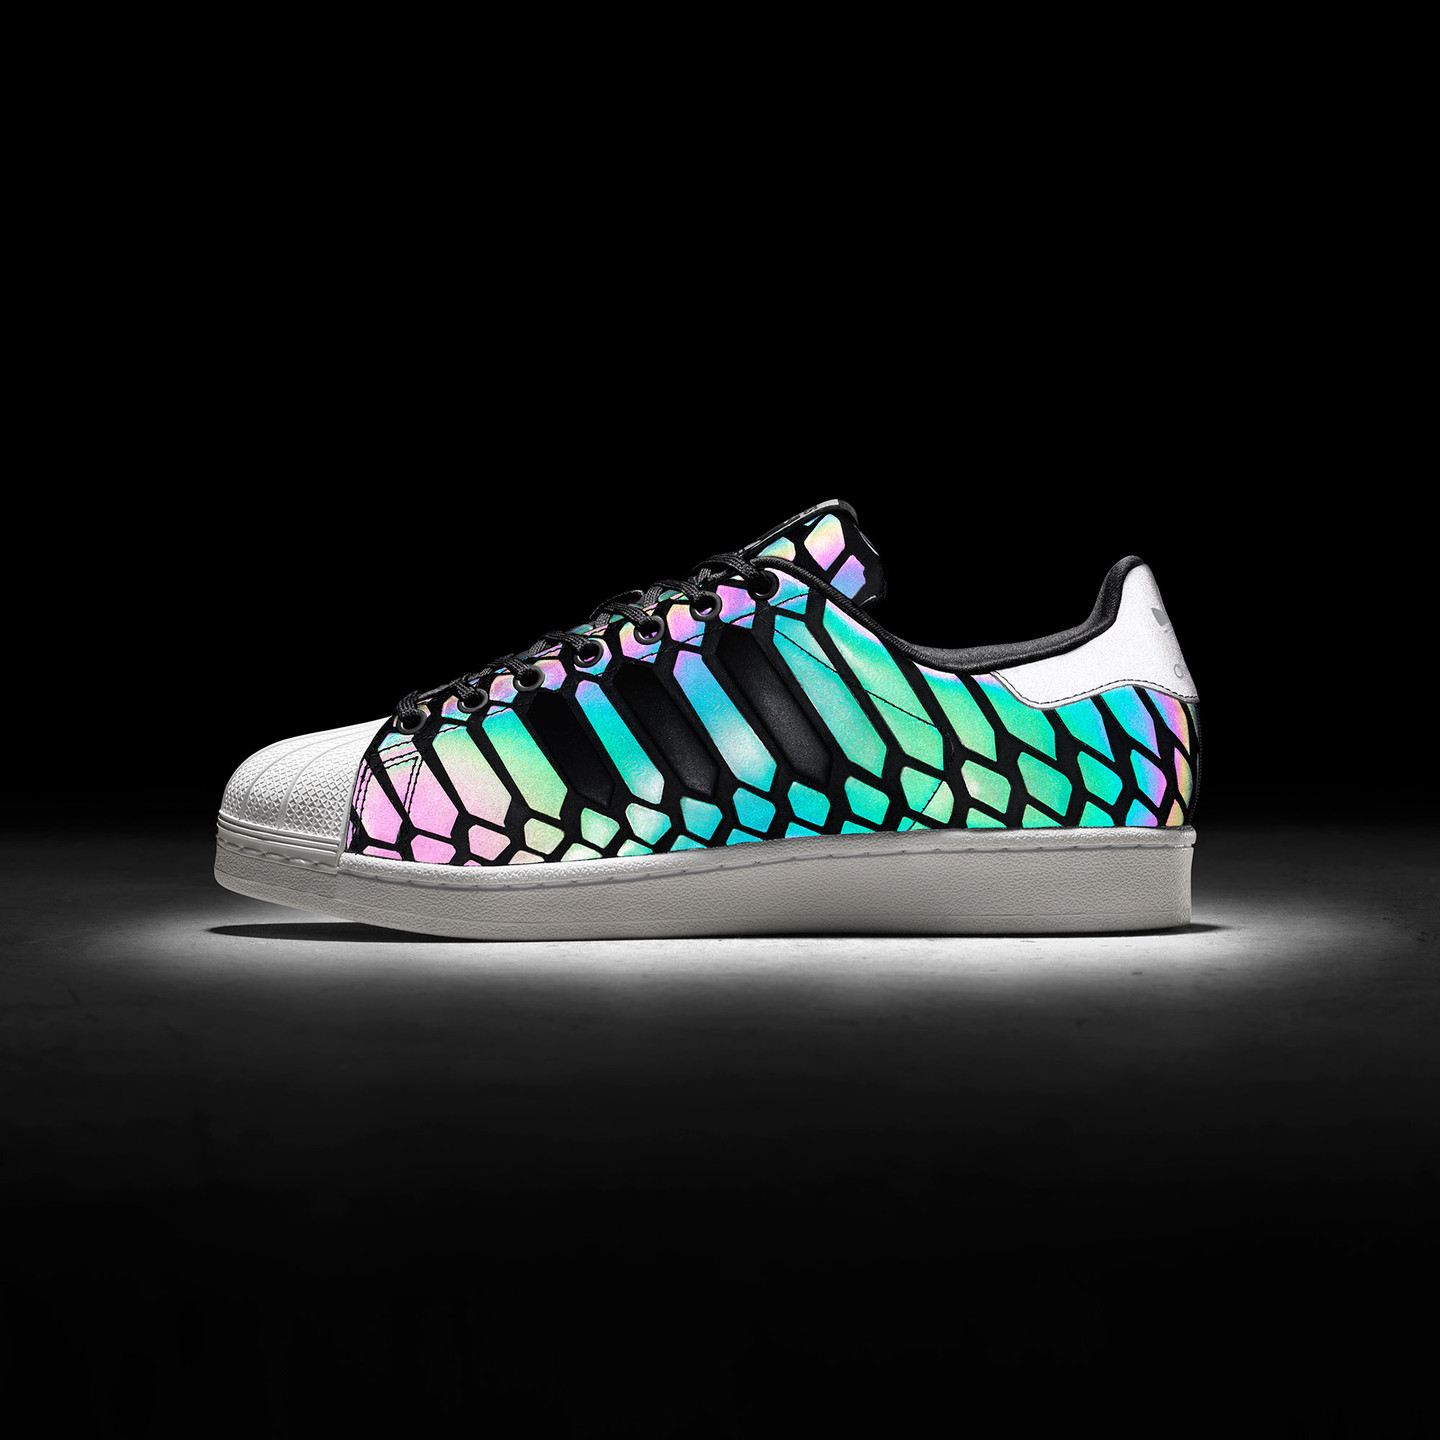 Adidas Superstar Xeno Pack Cblack / Supcol / Ftwwht D69366-42.66